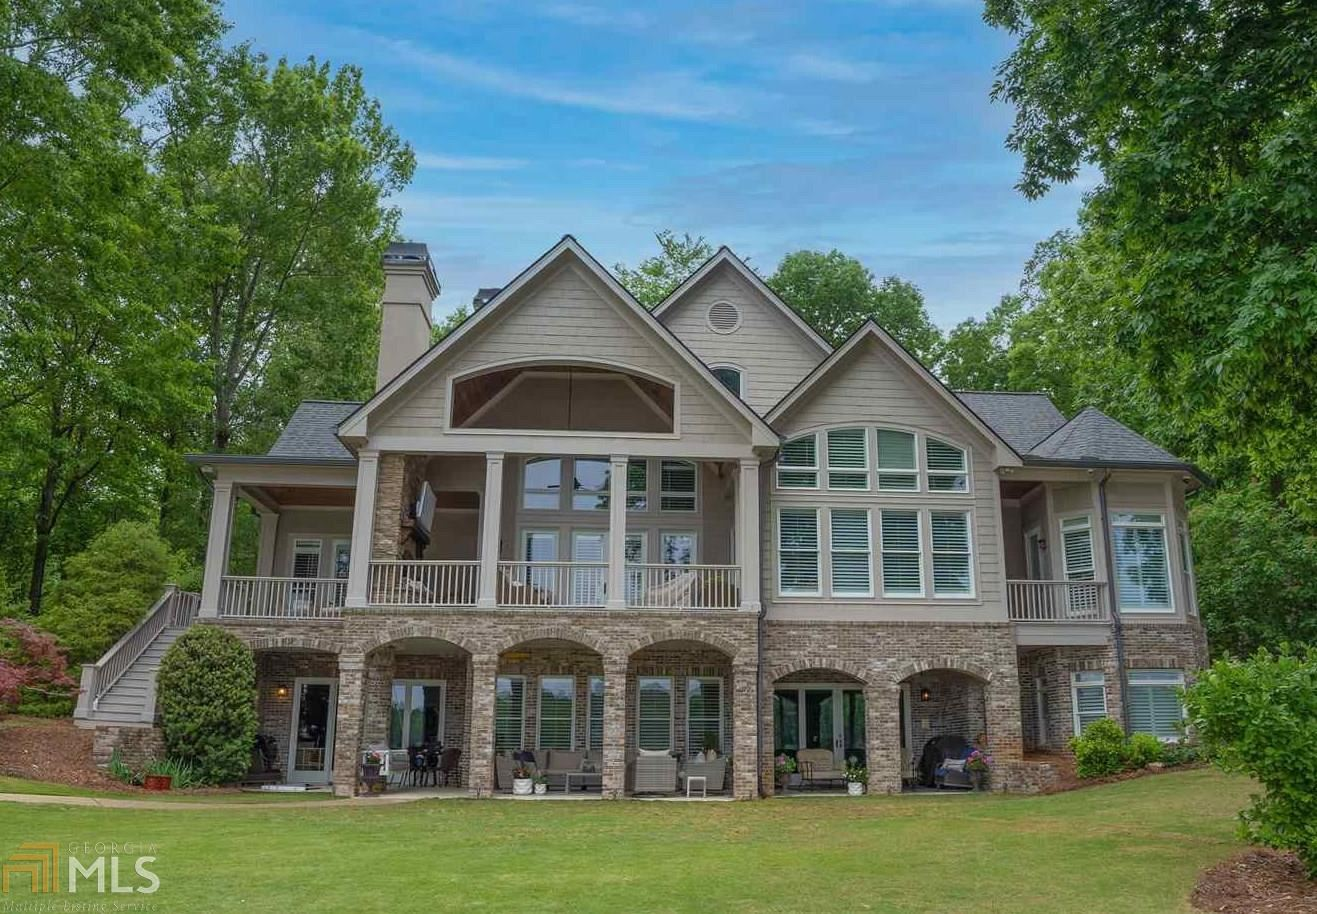 1050 Hounds Ear, Greensboro, GA 30642 - MLS#: 8976380